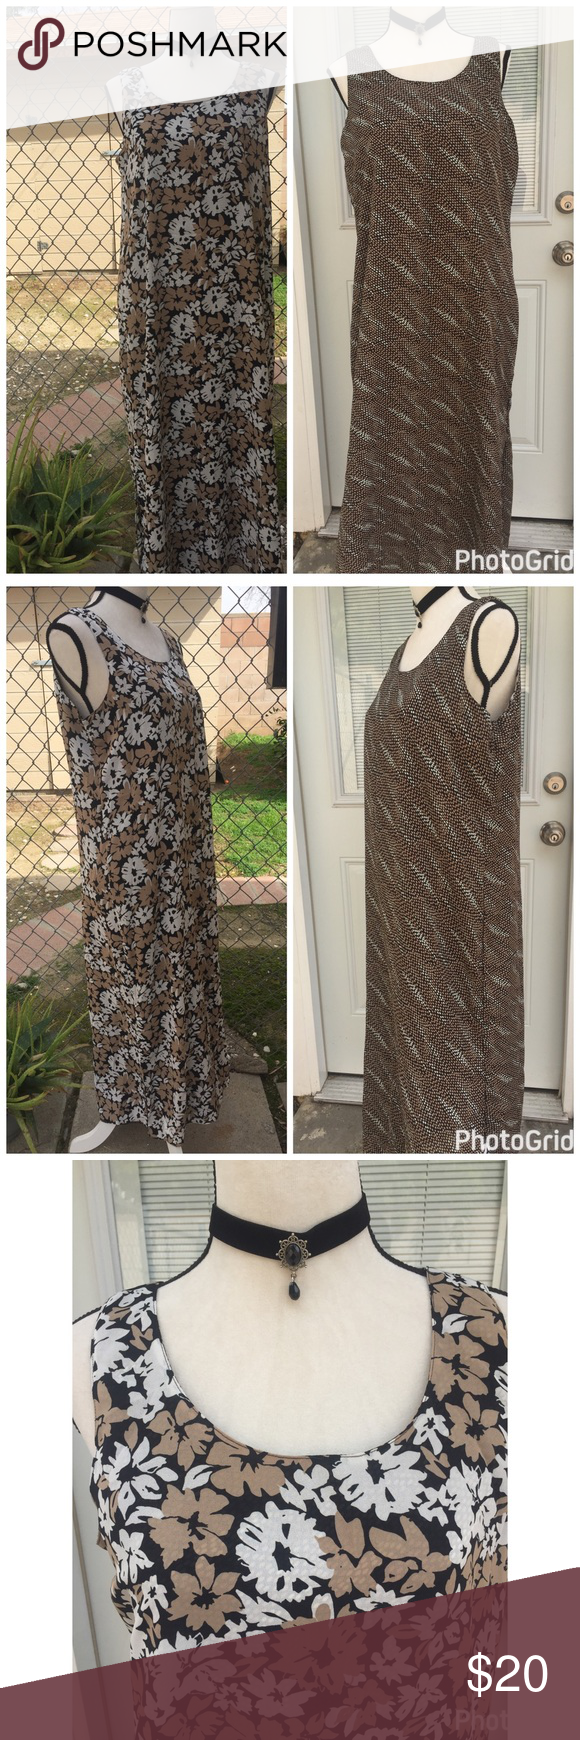 """Reversible Kathie Lee Dress😜 Simple and comfortable Maxi sleeveless loose fitting dress by Kathie Lee. This dress is reversible & nice print on both sides. Bust 40"""" 🌺❤😜🌷💕Tag reads size 12/14. Kathie Lee Collection  Dresses Maxi"""